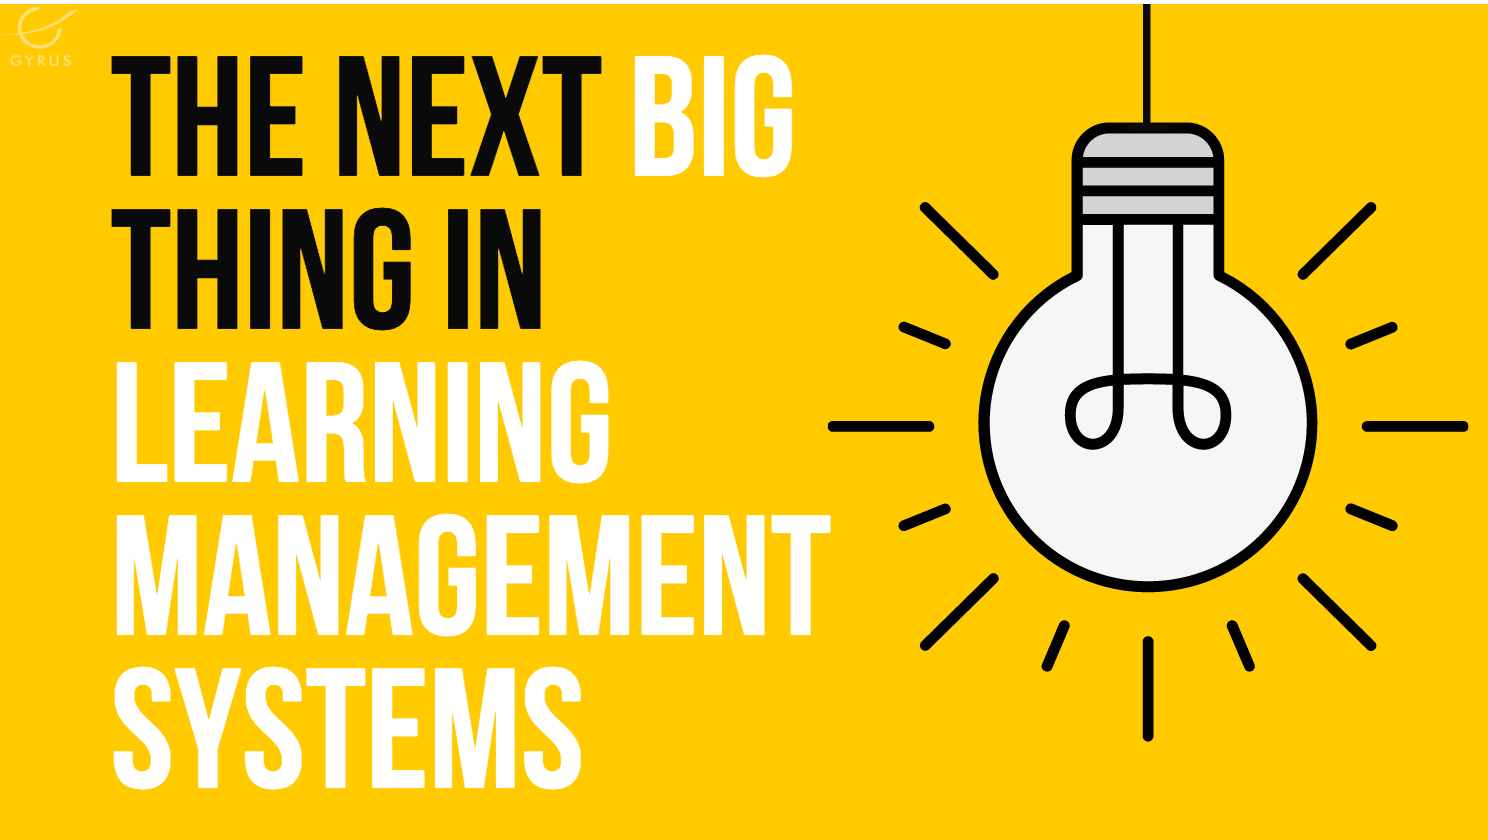 The Next Big Thing in Learning Management Systems